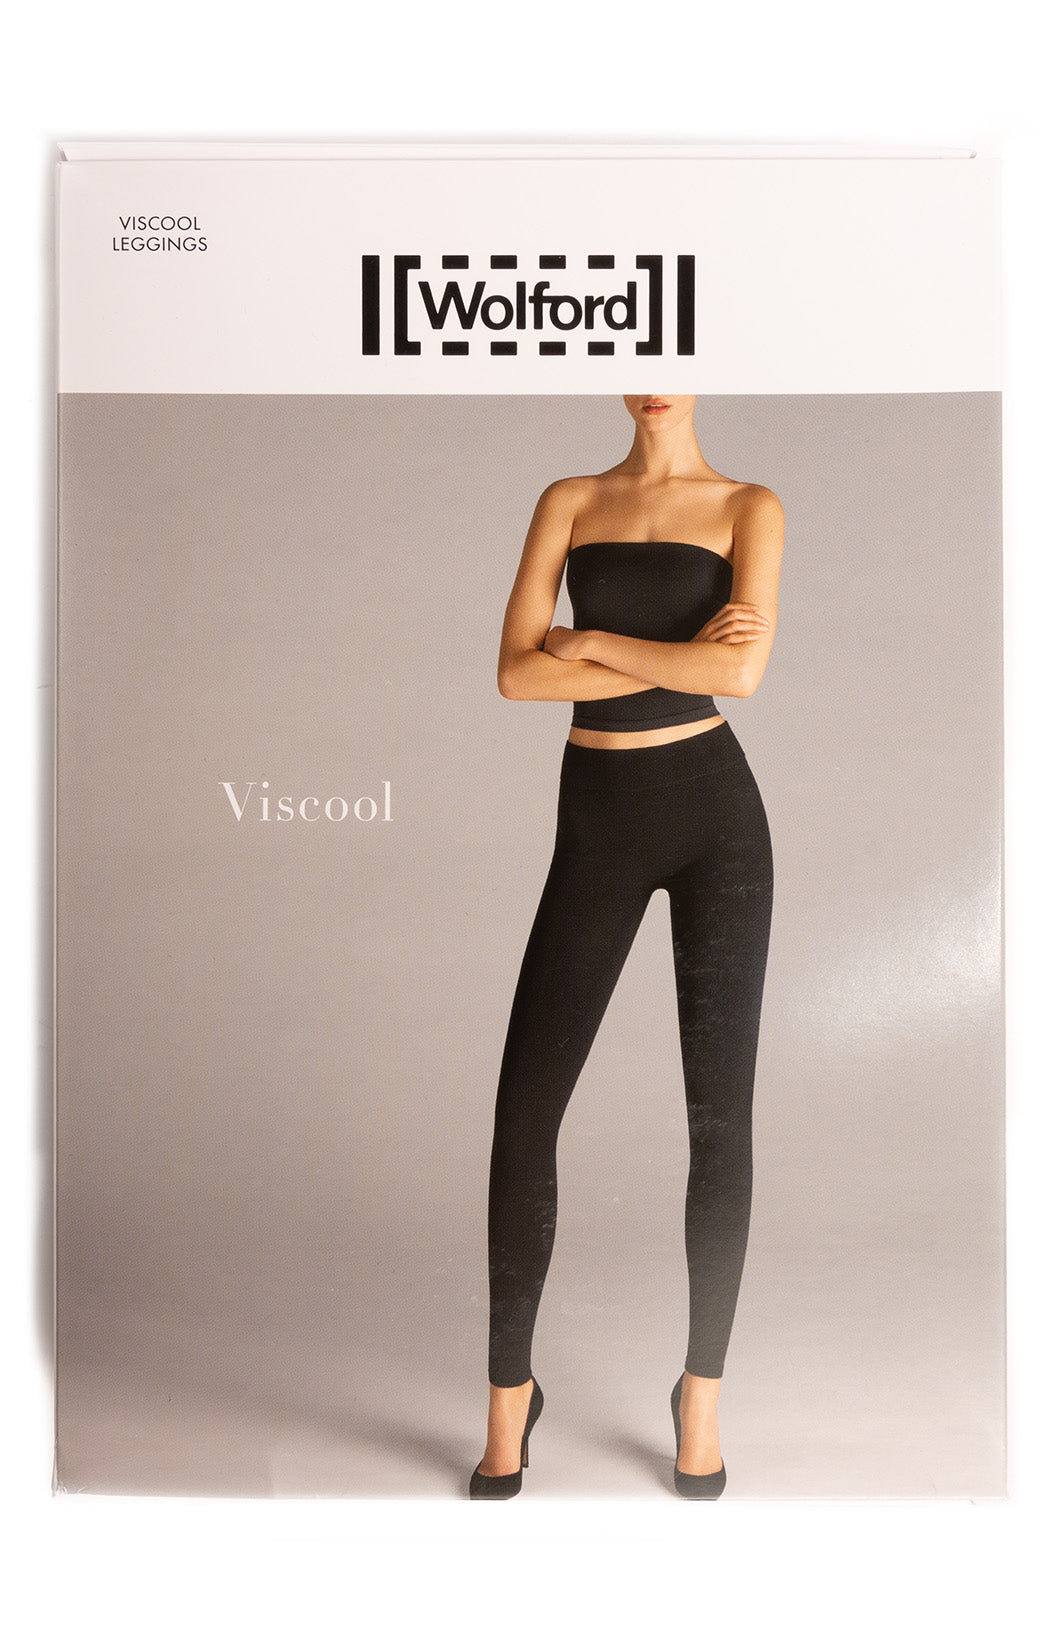 WOLFORD with tags Leggings (Viscool) Size: Small